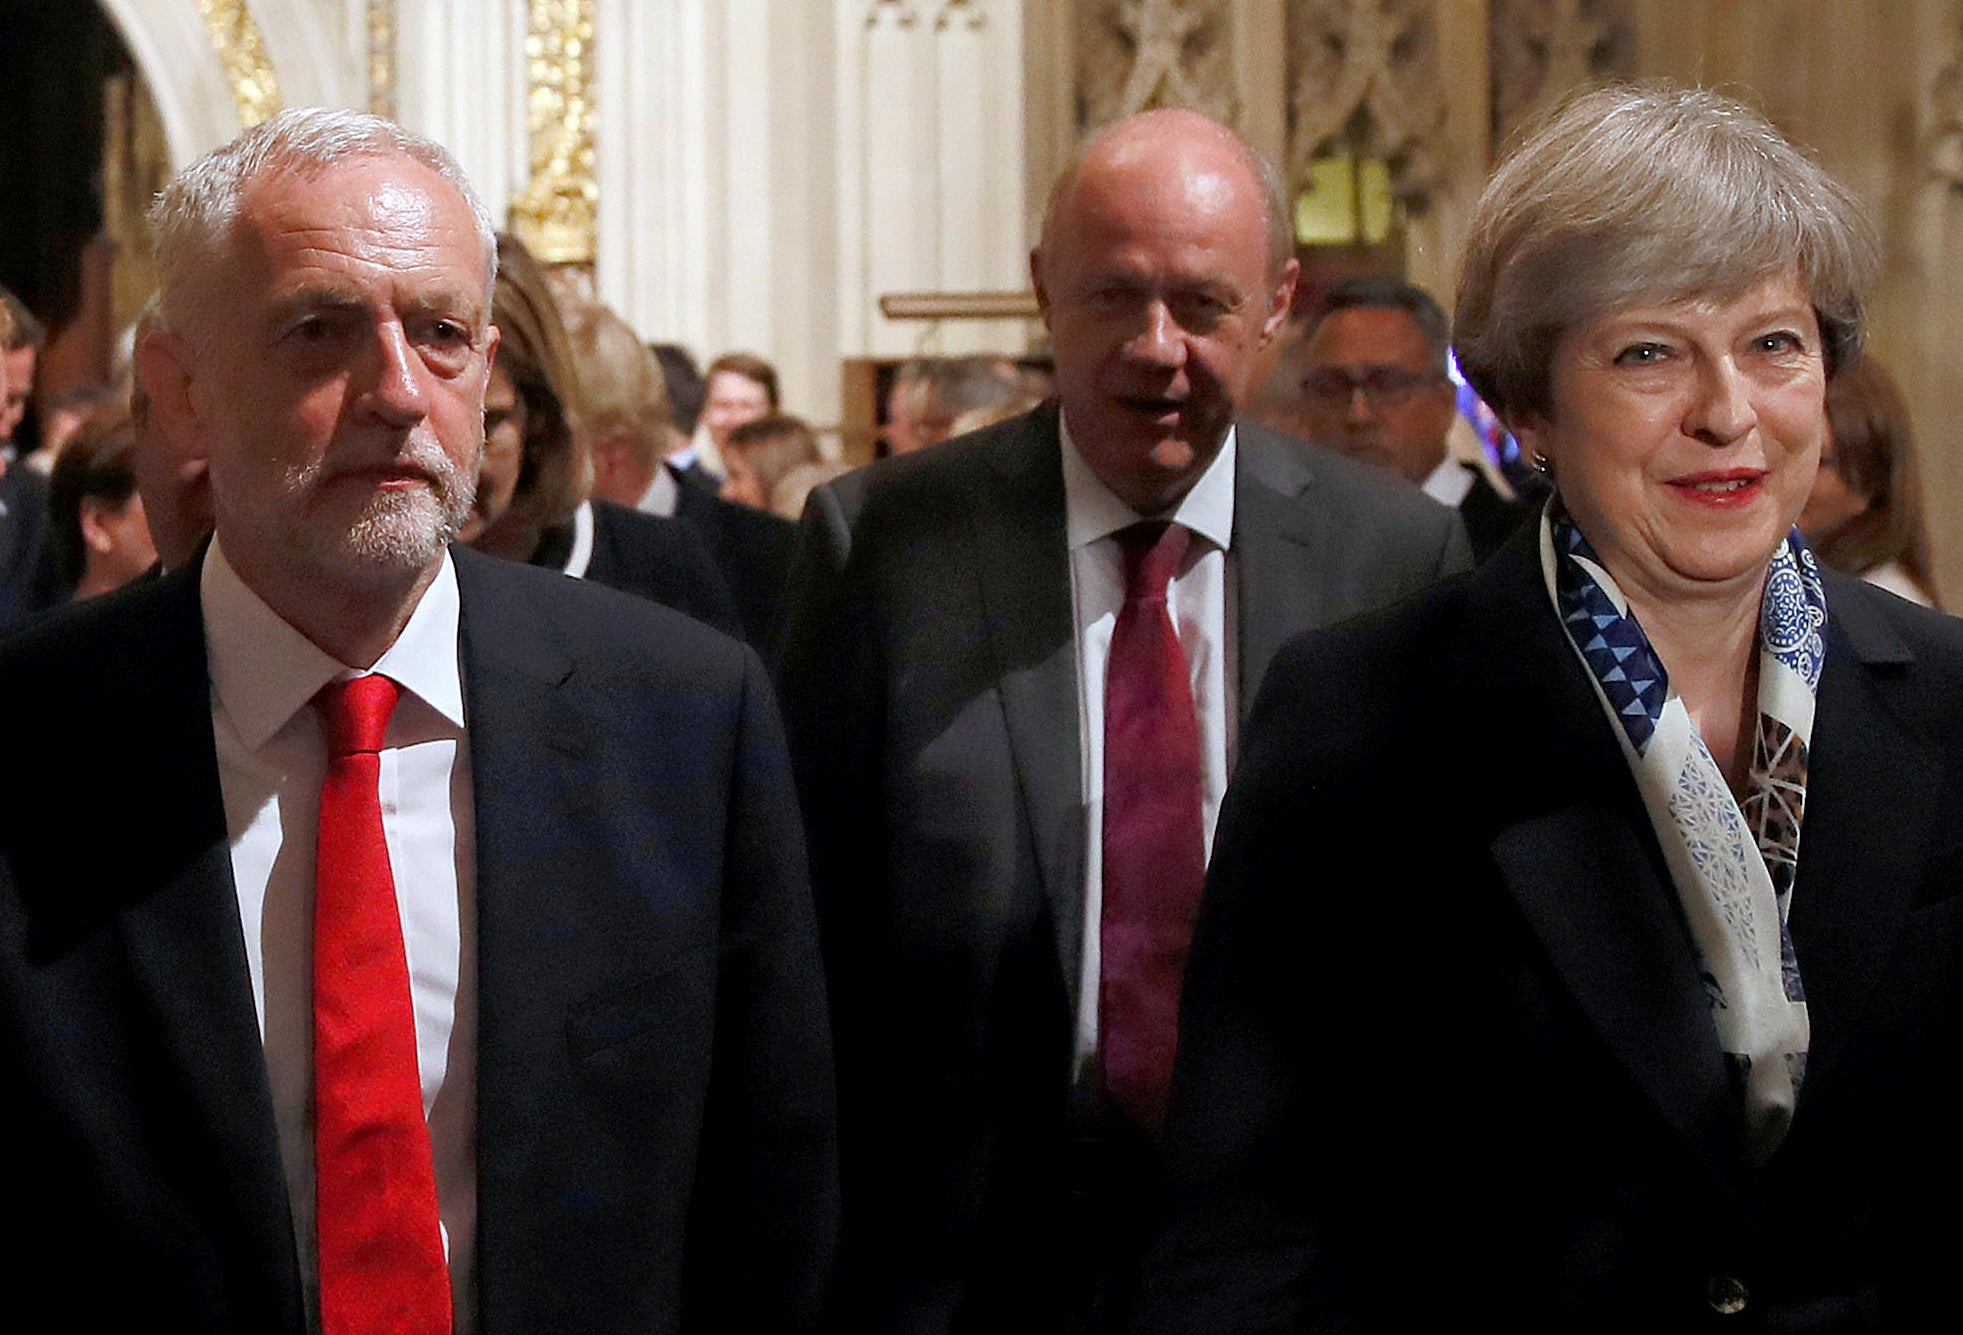 After the no confidence vote, Labour must escape Theresa May's next trap